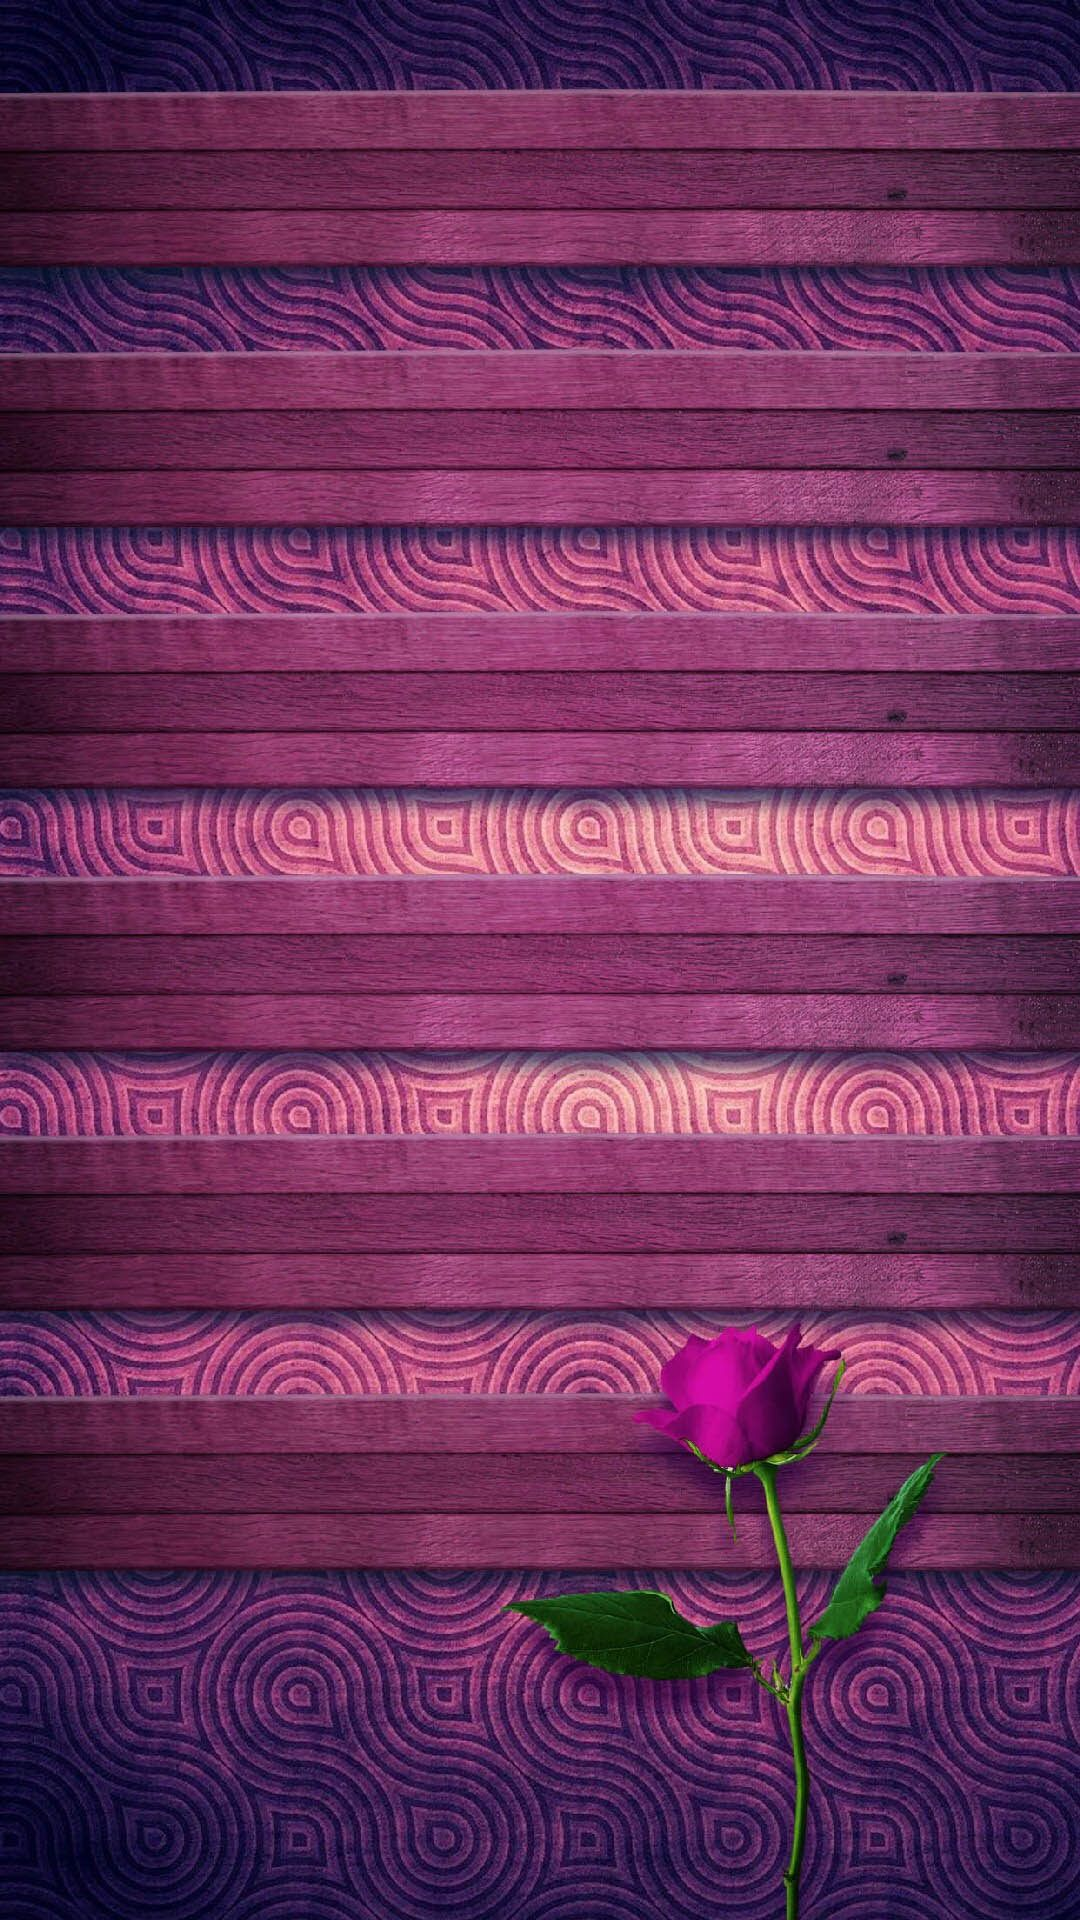 Tap And Get The Free App Shelves Beautiful Rose Purple Lovely Flowers Romantic Pattern Iphone 6 Plus Wallpaper Wallpaper Iphone Summer Pink Wallpaper Iphone